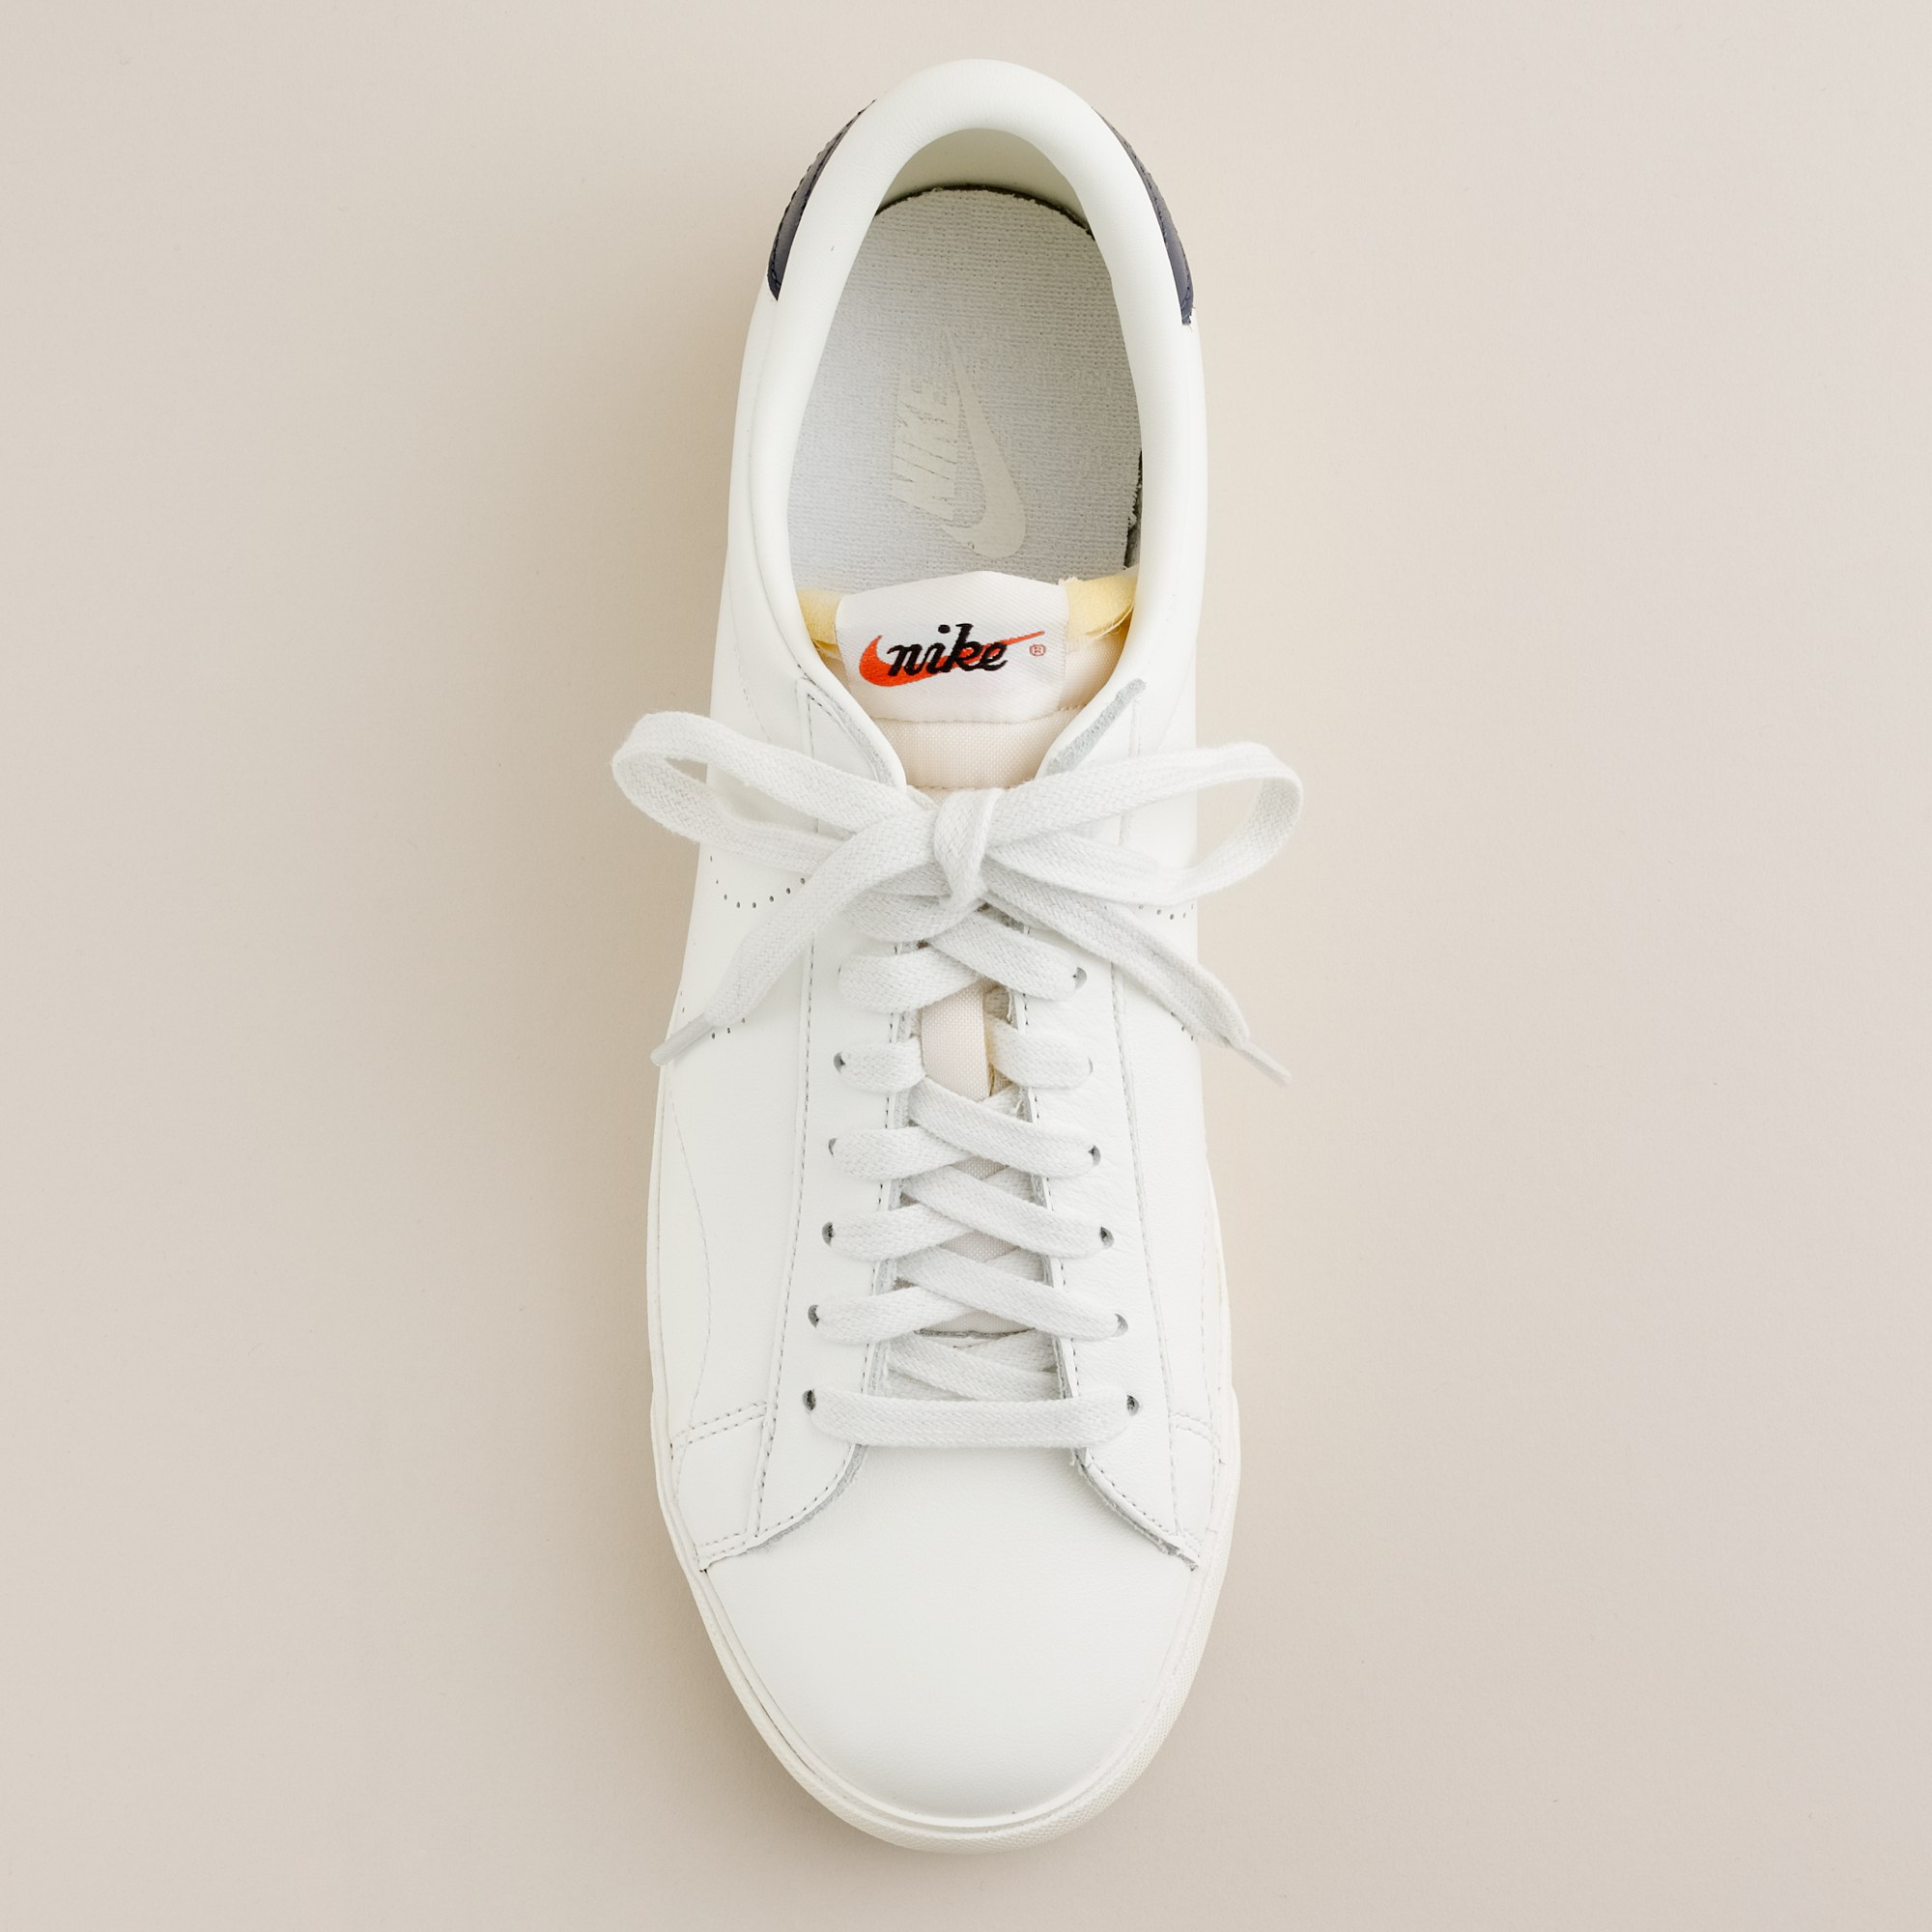 Jcrew NikeR For Vintage Collection Leather Tennis Classic